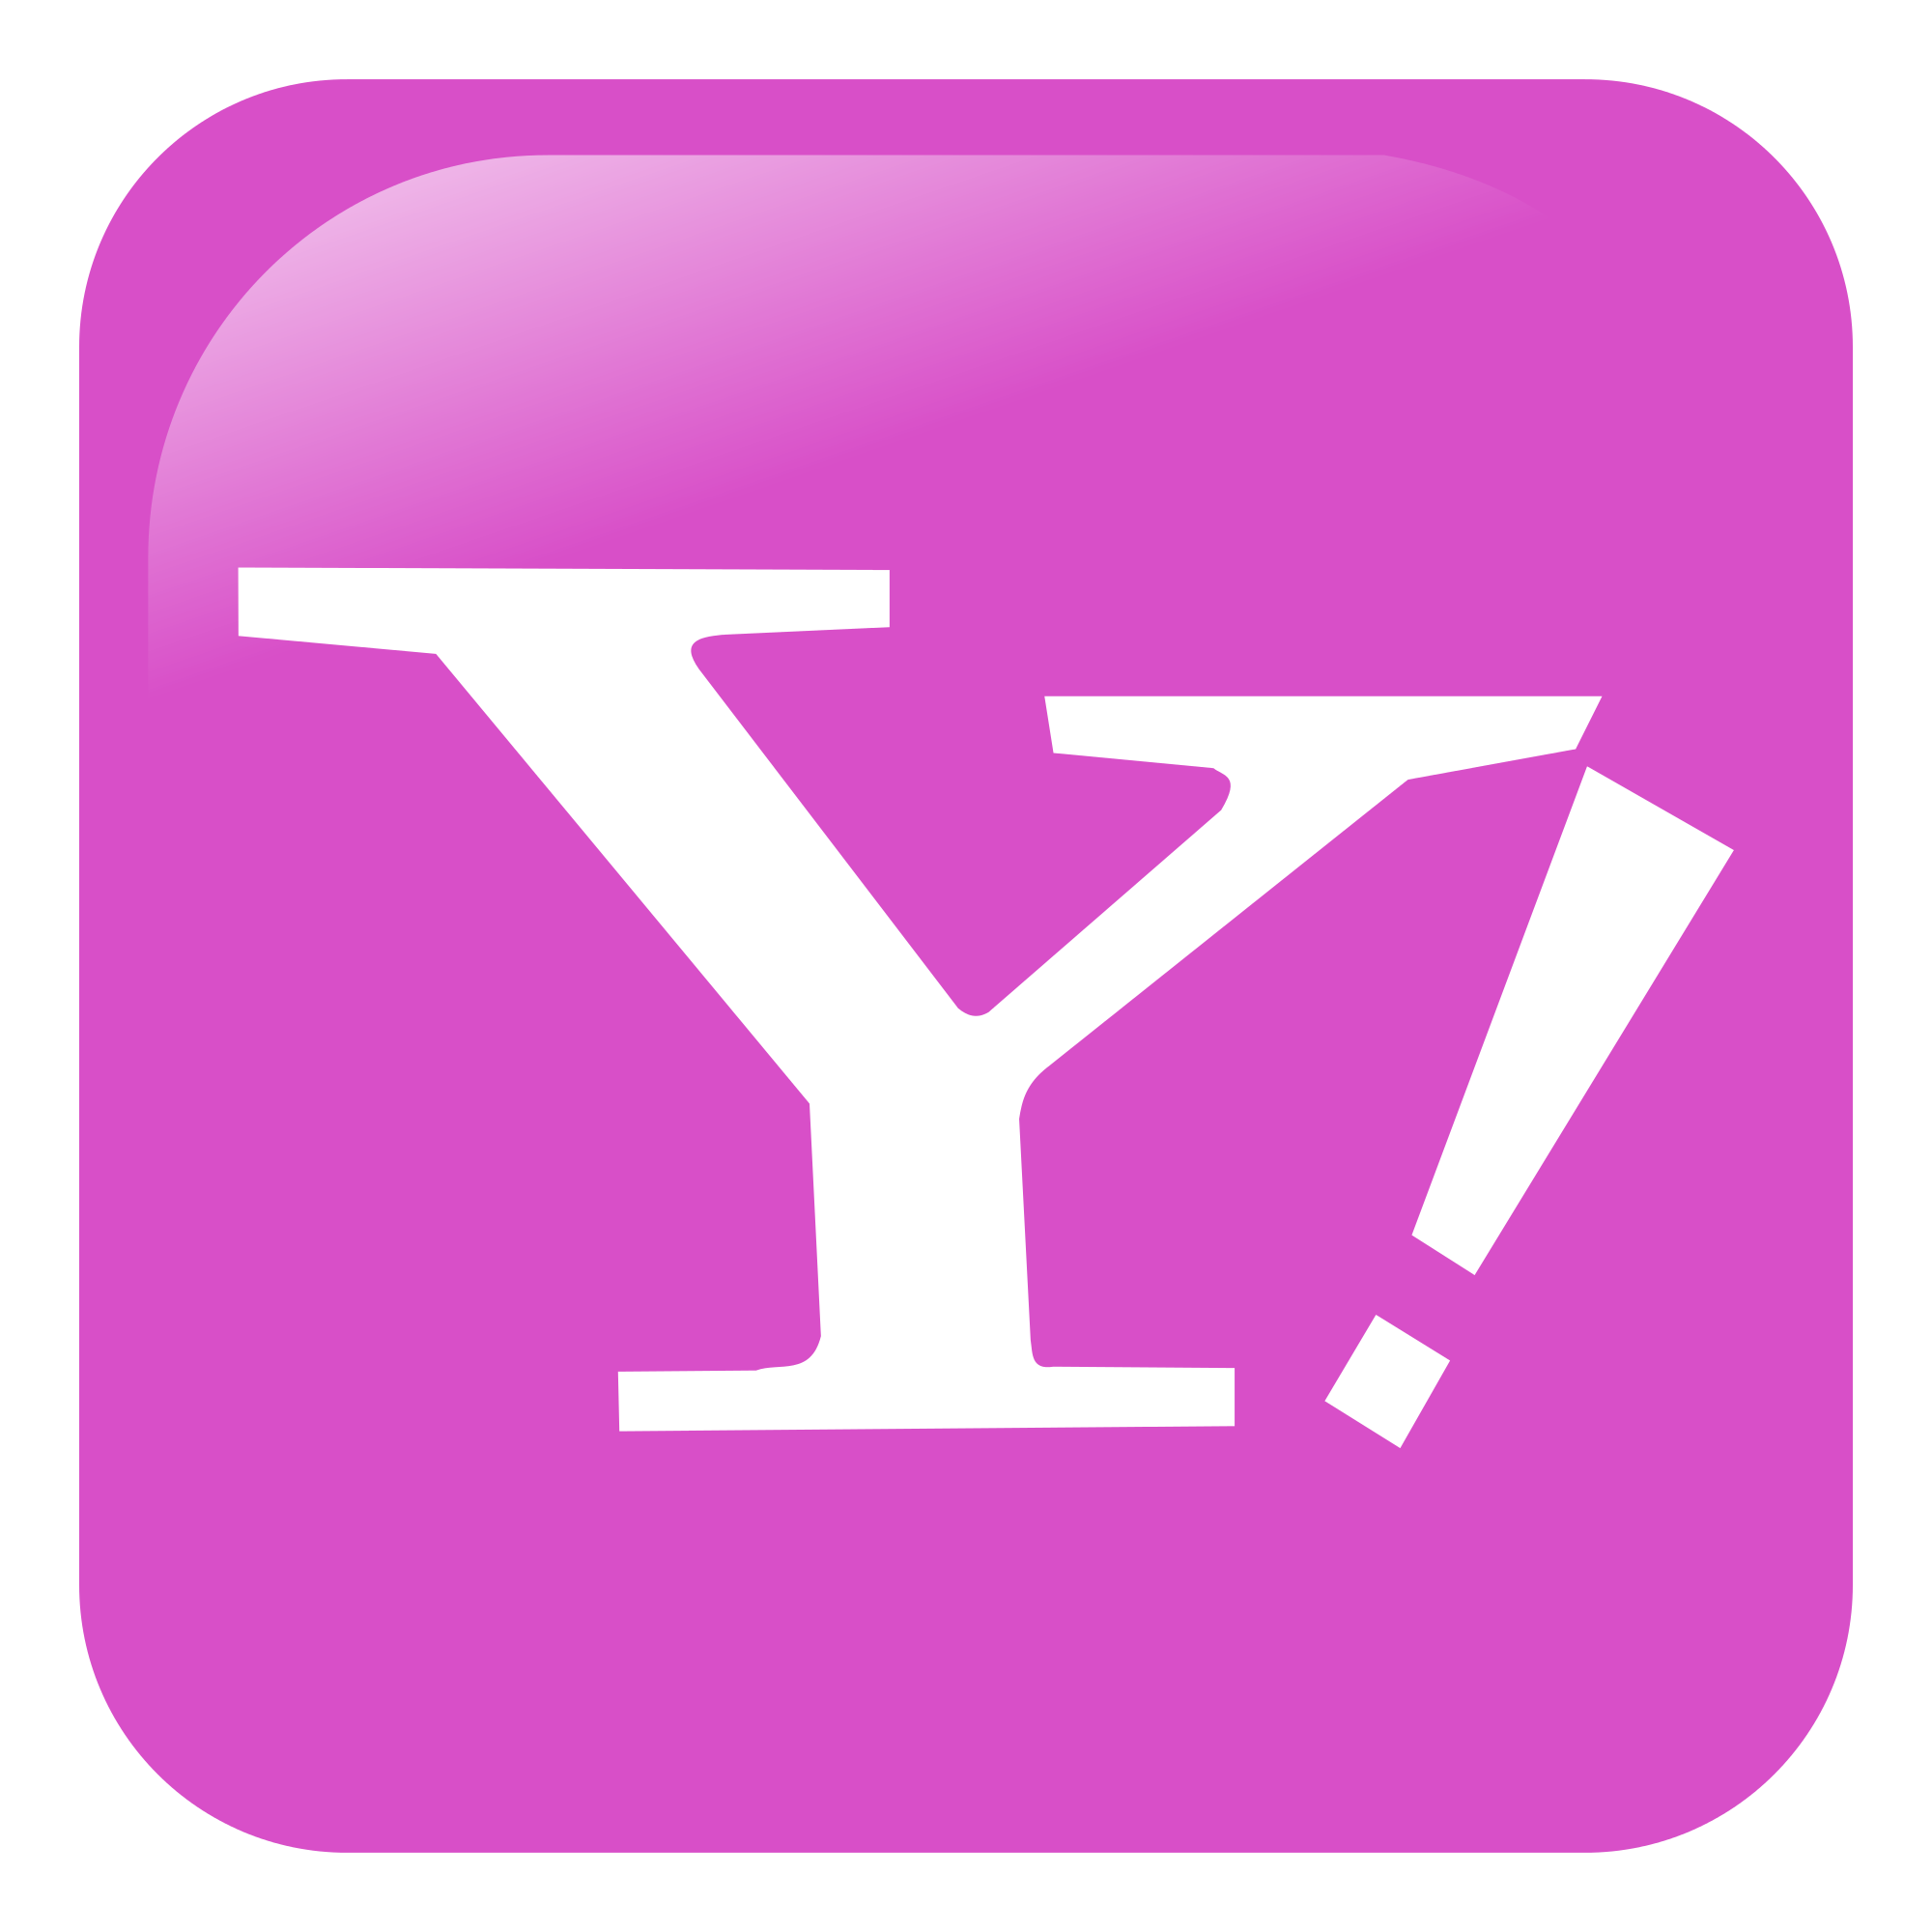 HQ Yahoo PNG Transparent Yahoo.PNG Images..